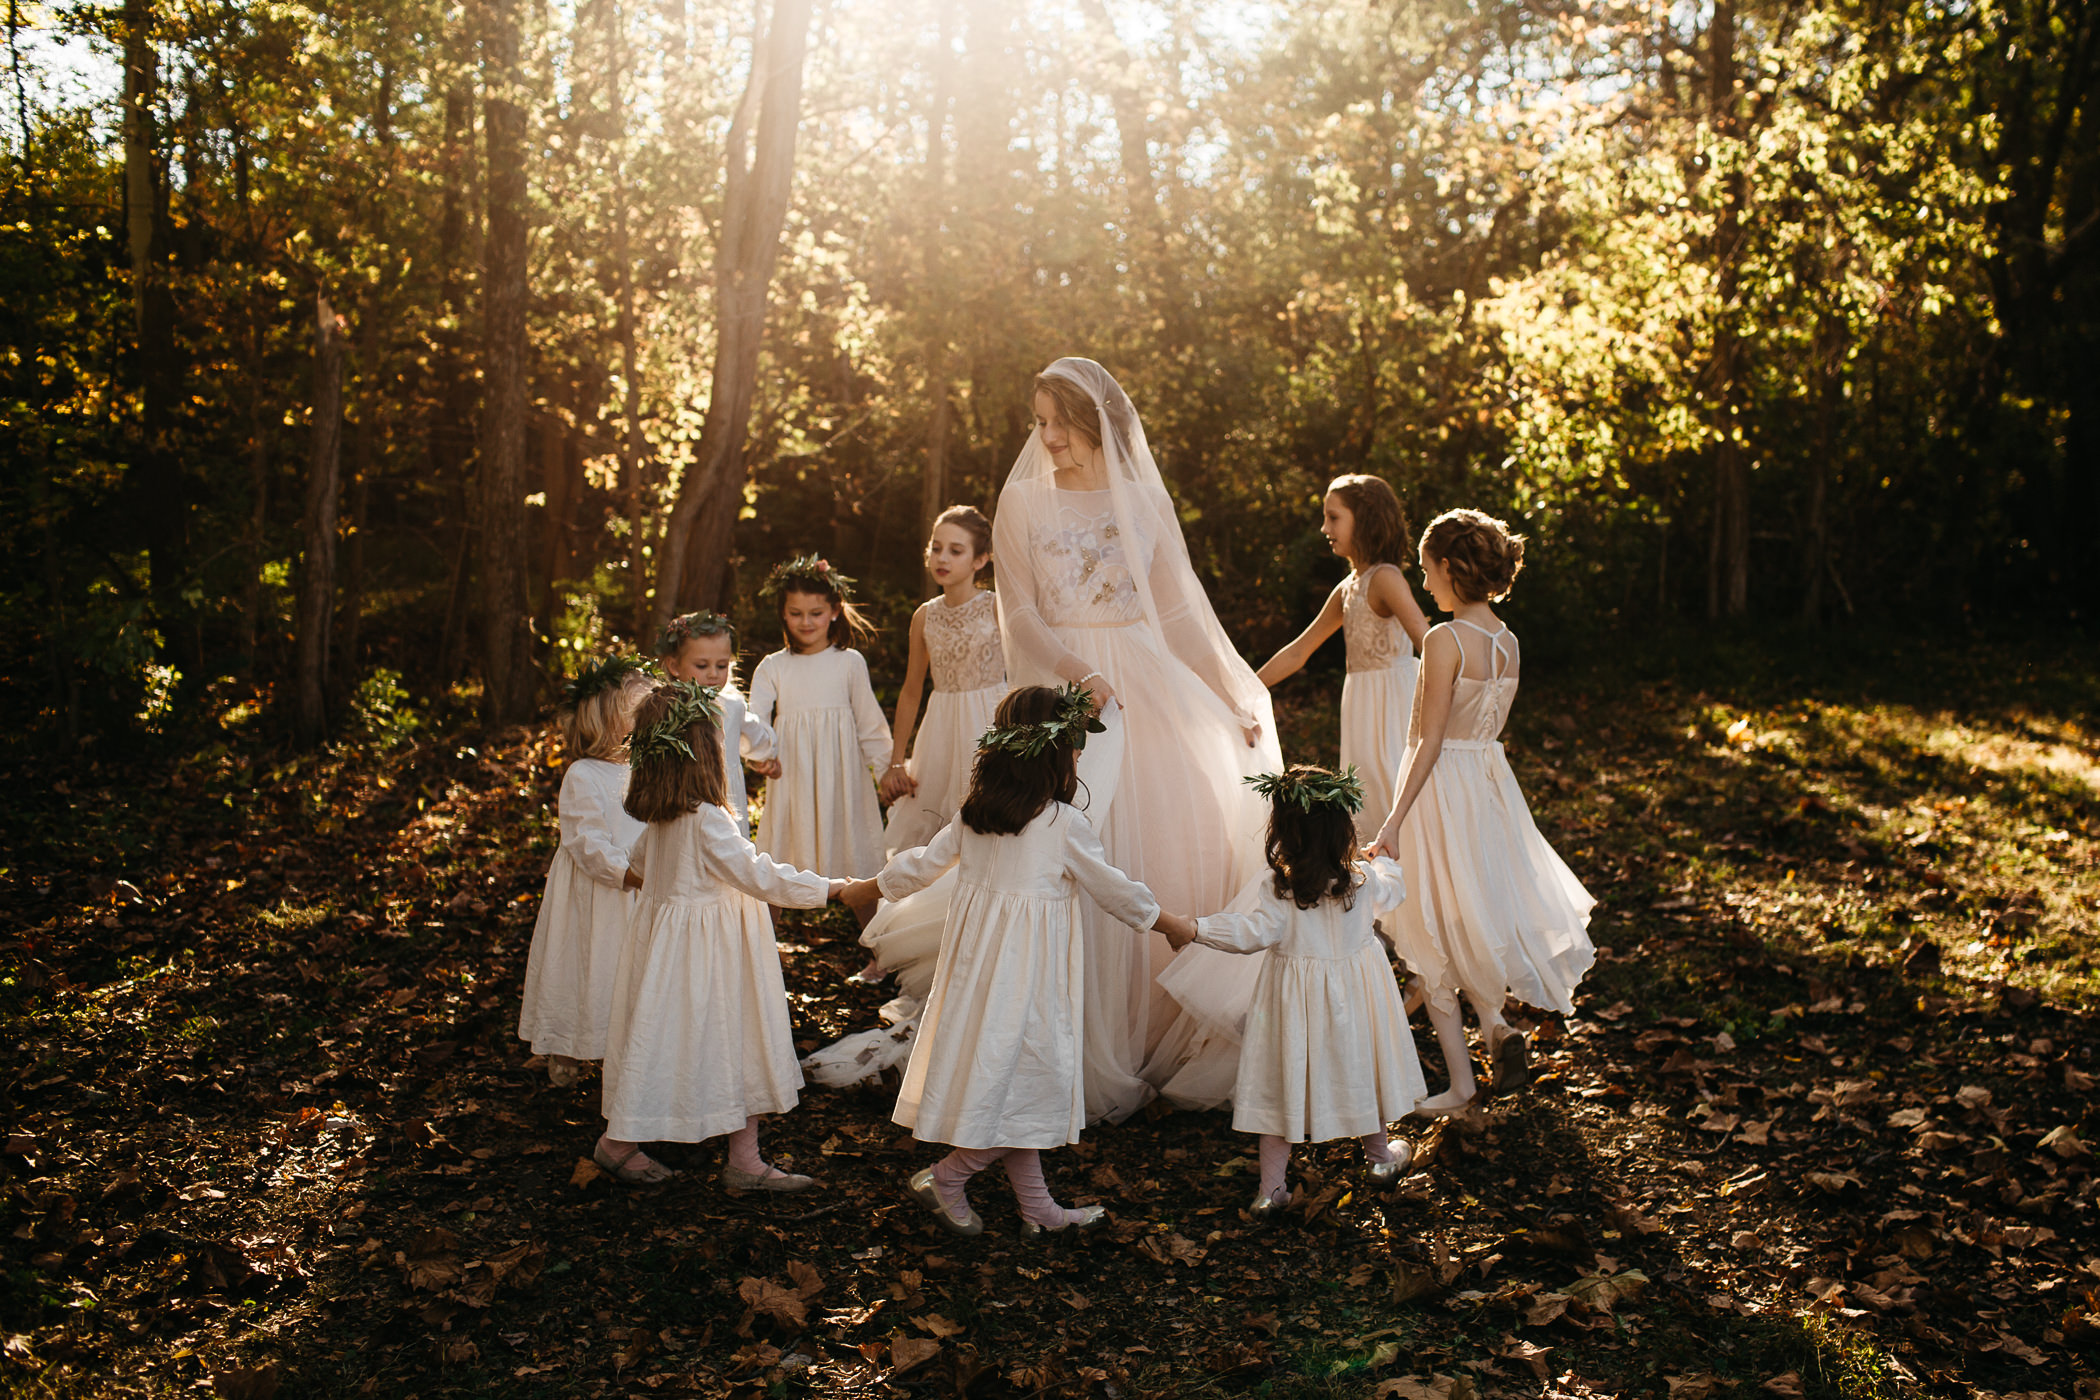 eastlyn and joshua dayton ohio wedding photographers vintage autumn wedding-96.jpg